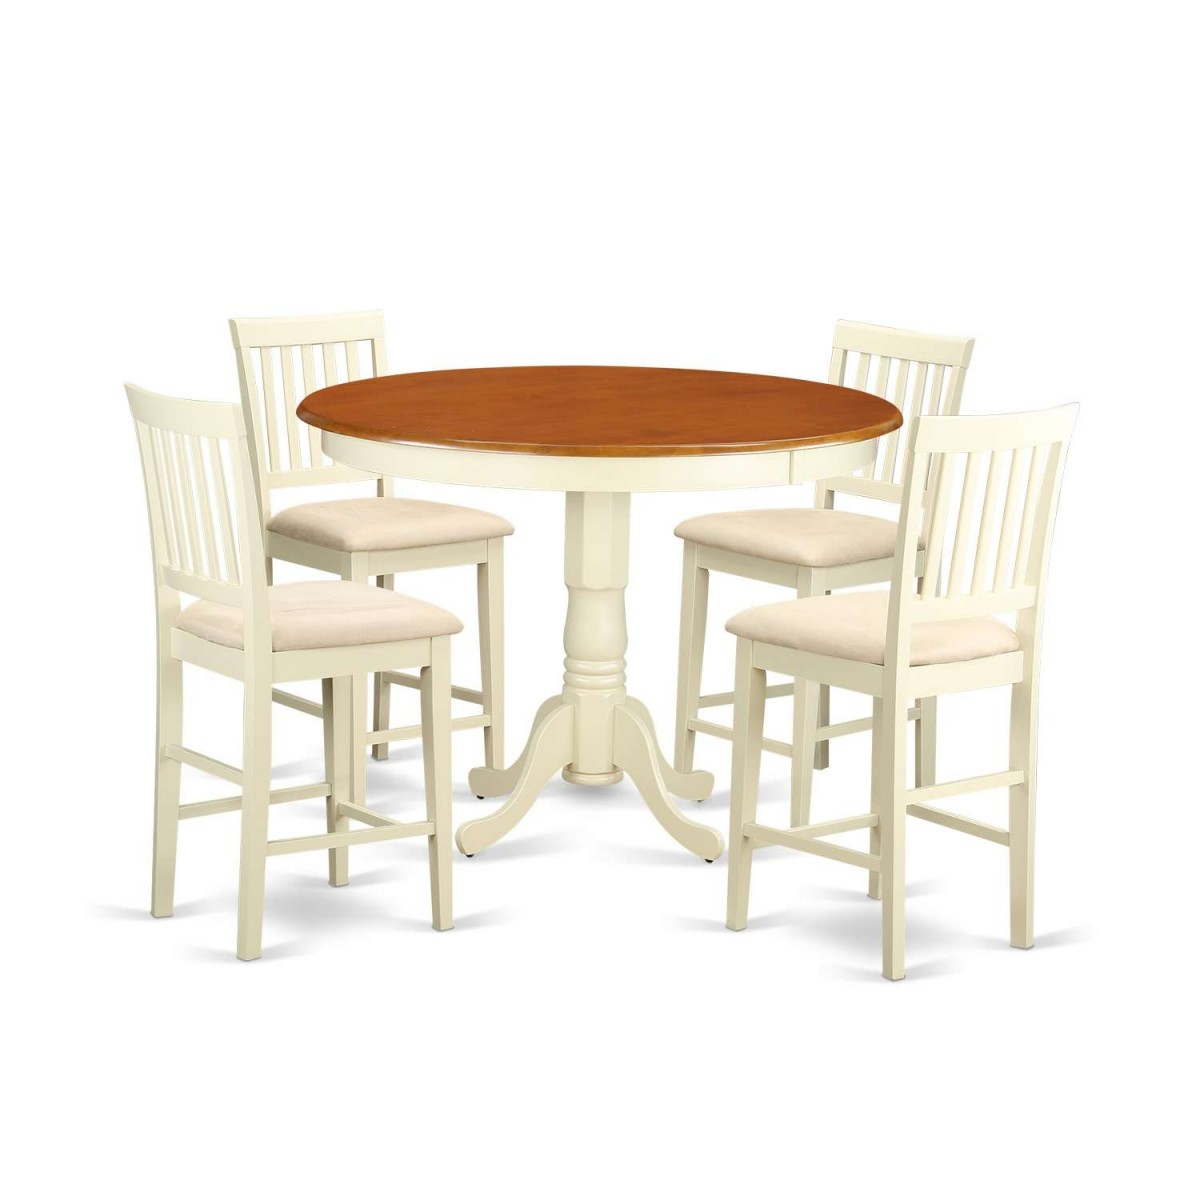 Set Of 4 Kitchen Counter Height Chairs With Microfiber: East West Furniture Trenton 5 Piece Counter Height Pub Set